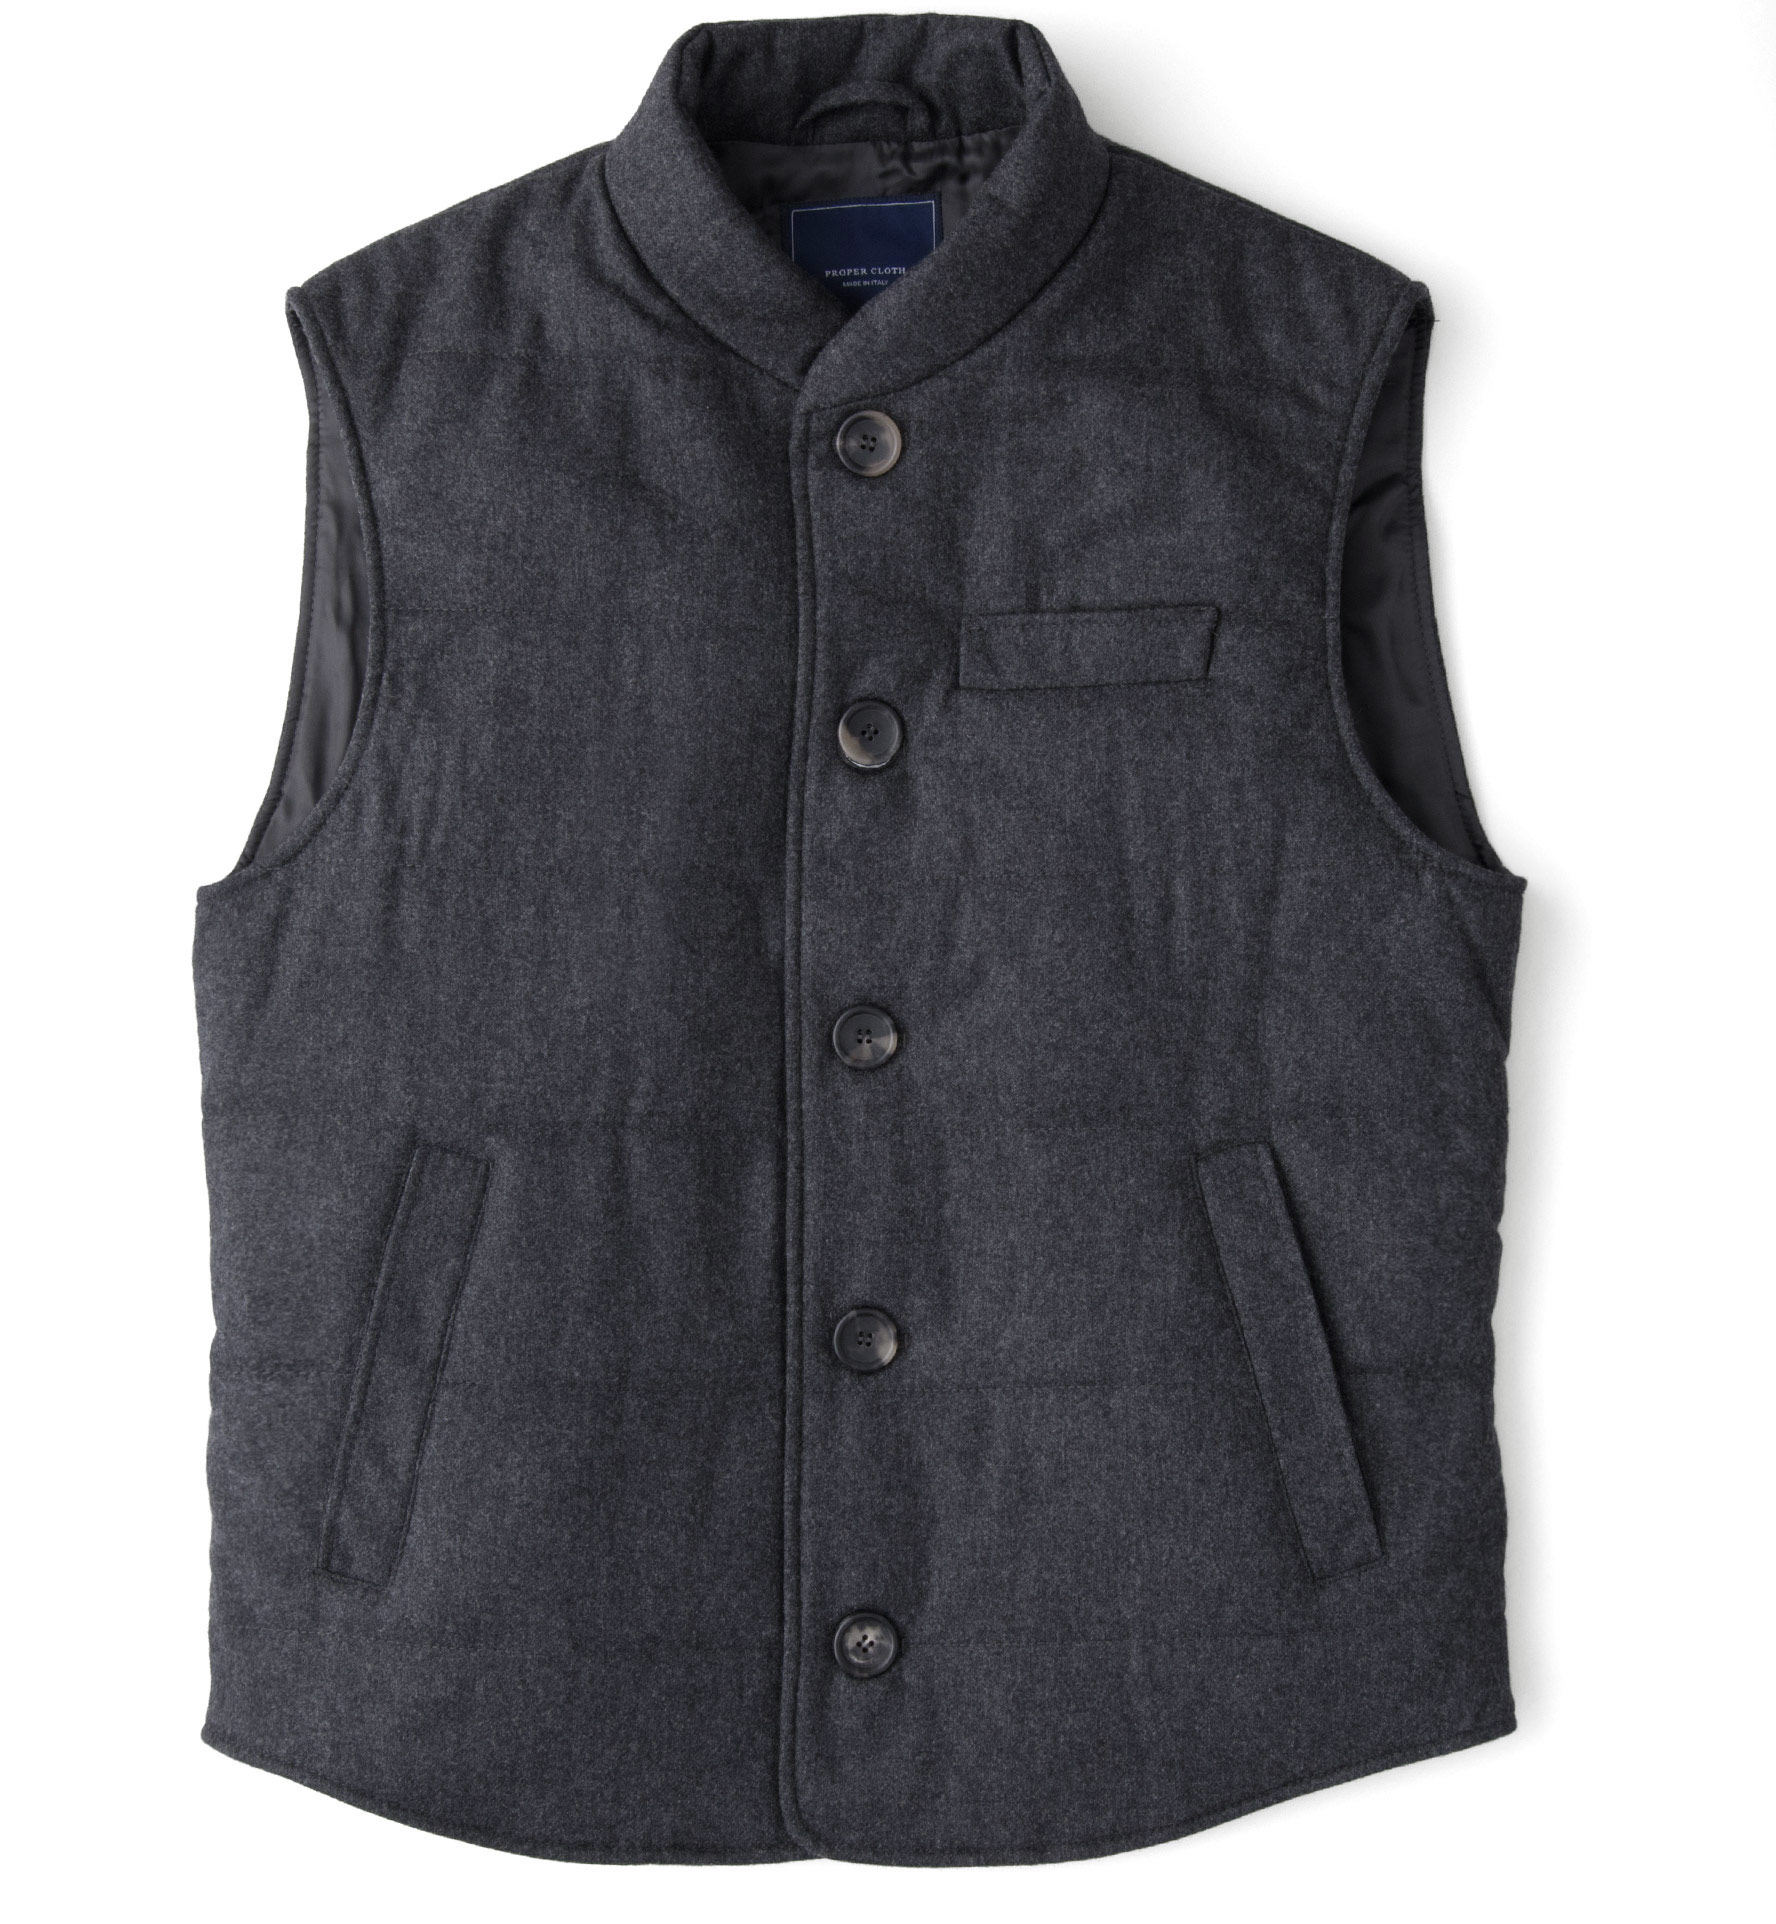 Zoom Image of Charcoal Cortina Vest